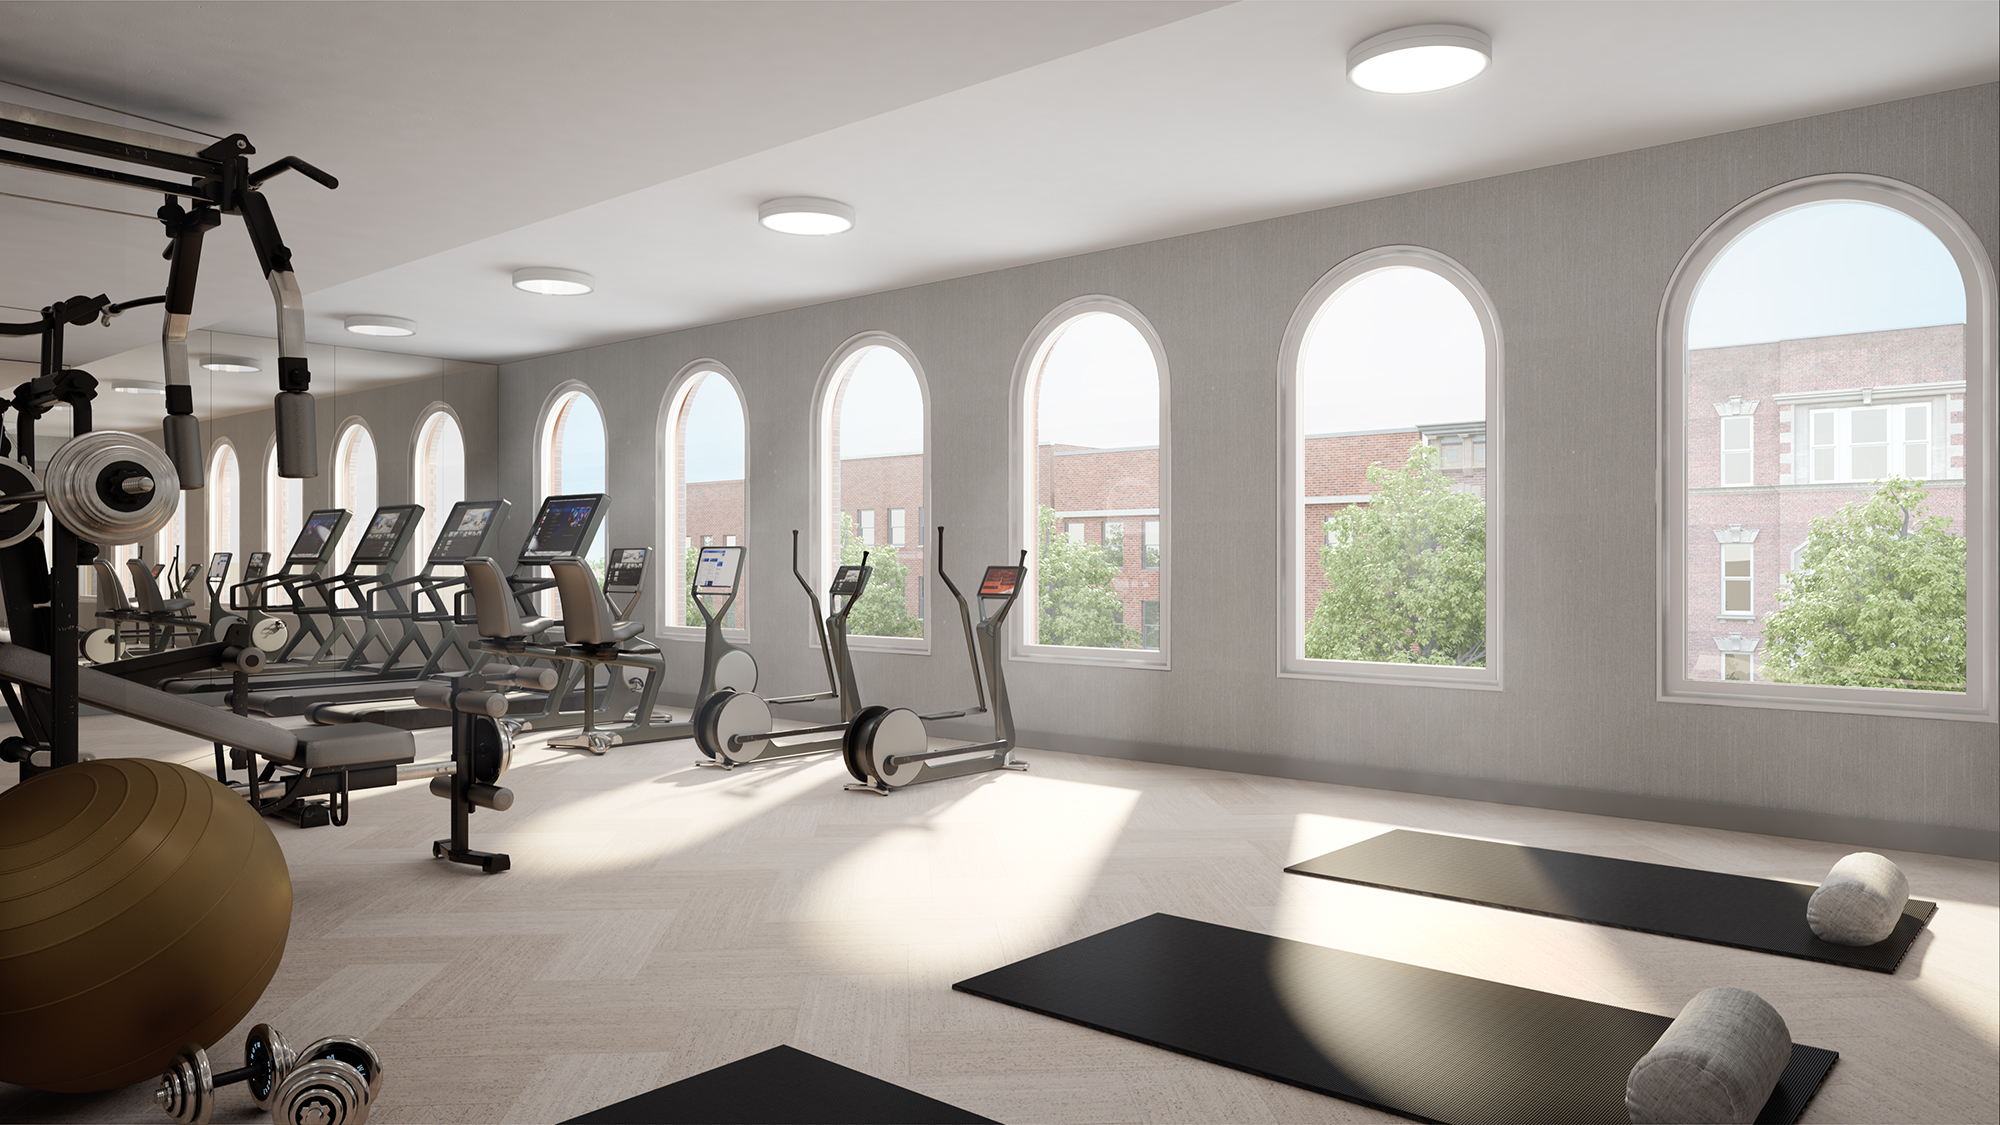 Parlour Brooklyn Gym Rendering